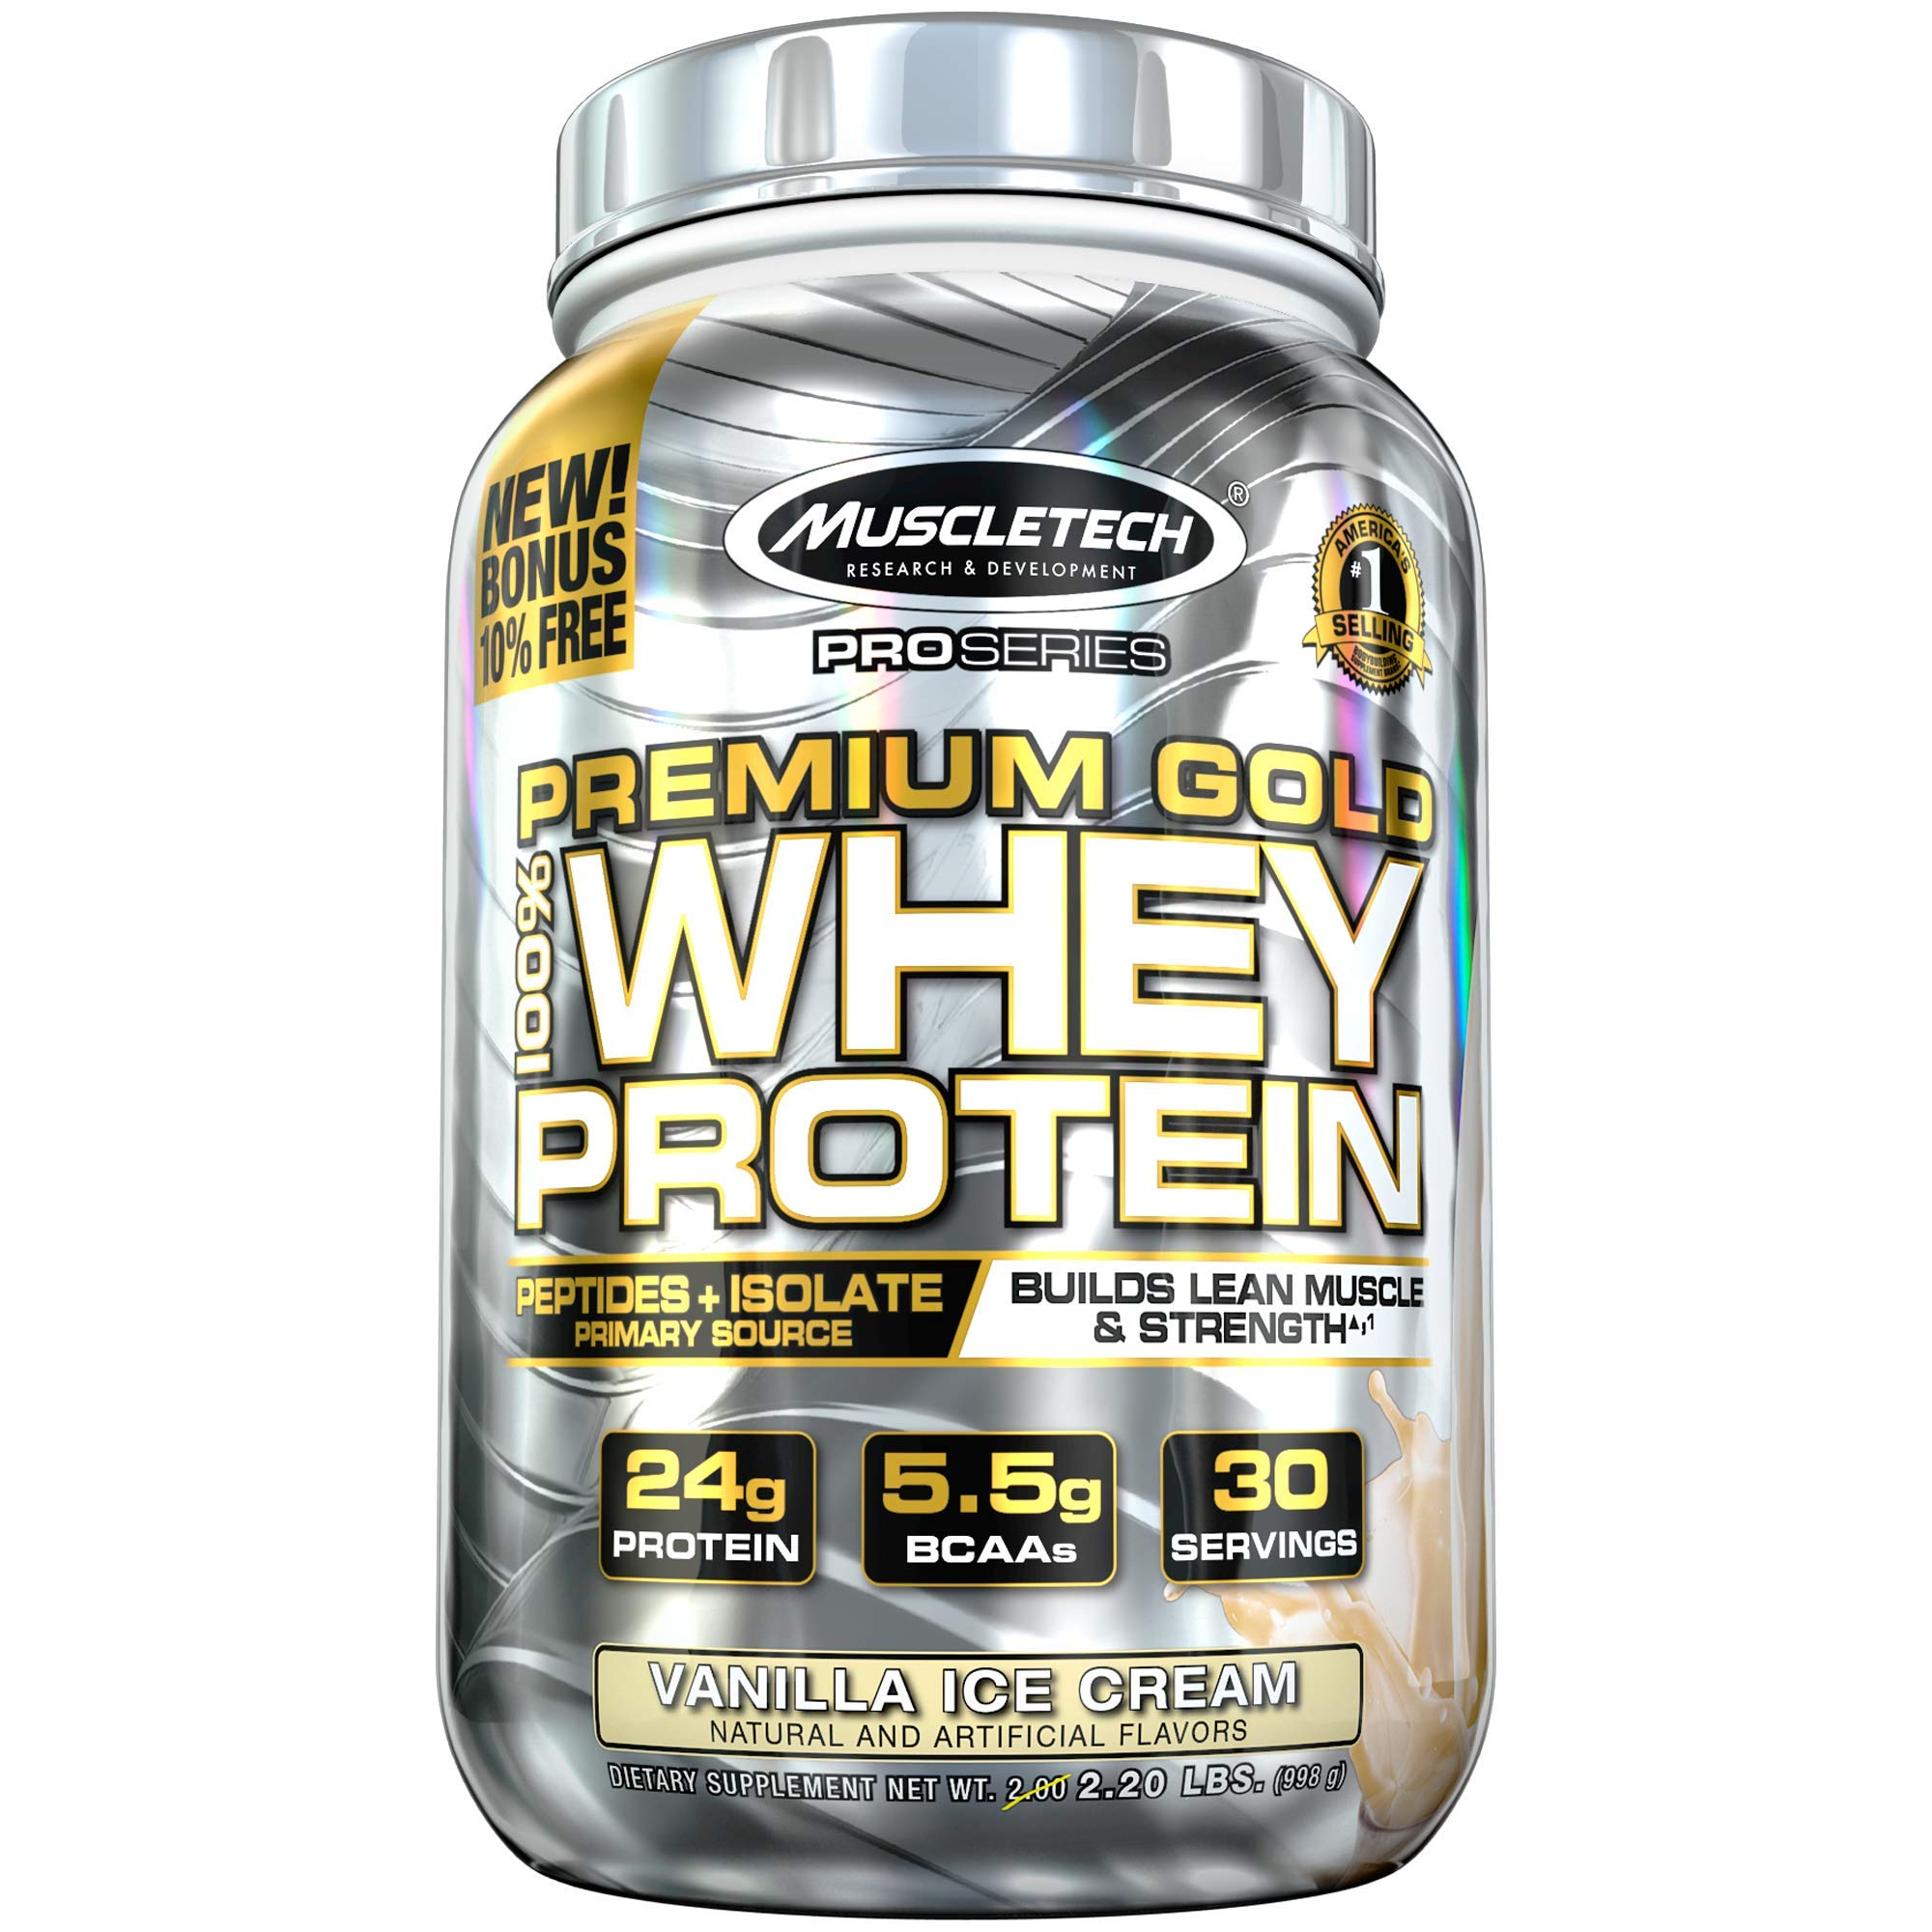 MuscleTech Premium Gold 100% Whey Protein Powder, Ultra Fast Absorbing Whey Peptides & Whey Protein Isolate, Vanilla Ice Cream, 30 Servings (2.23lbs) by MuscleTech